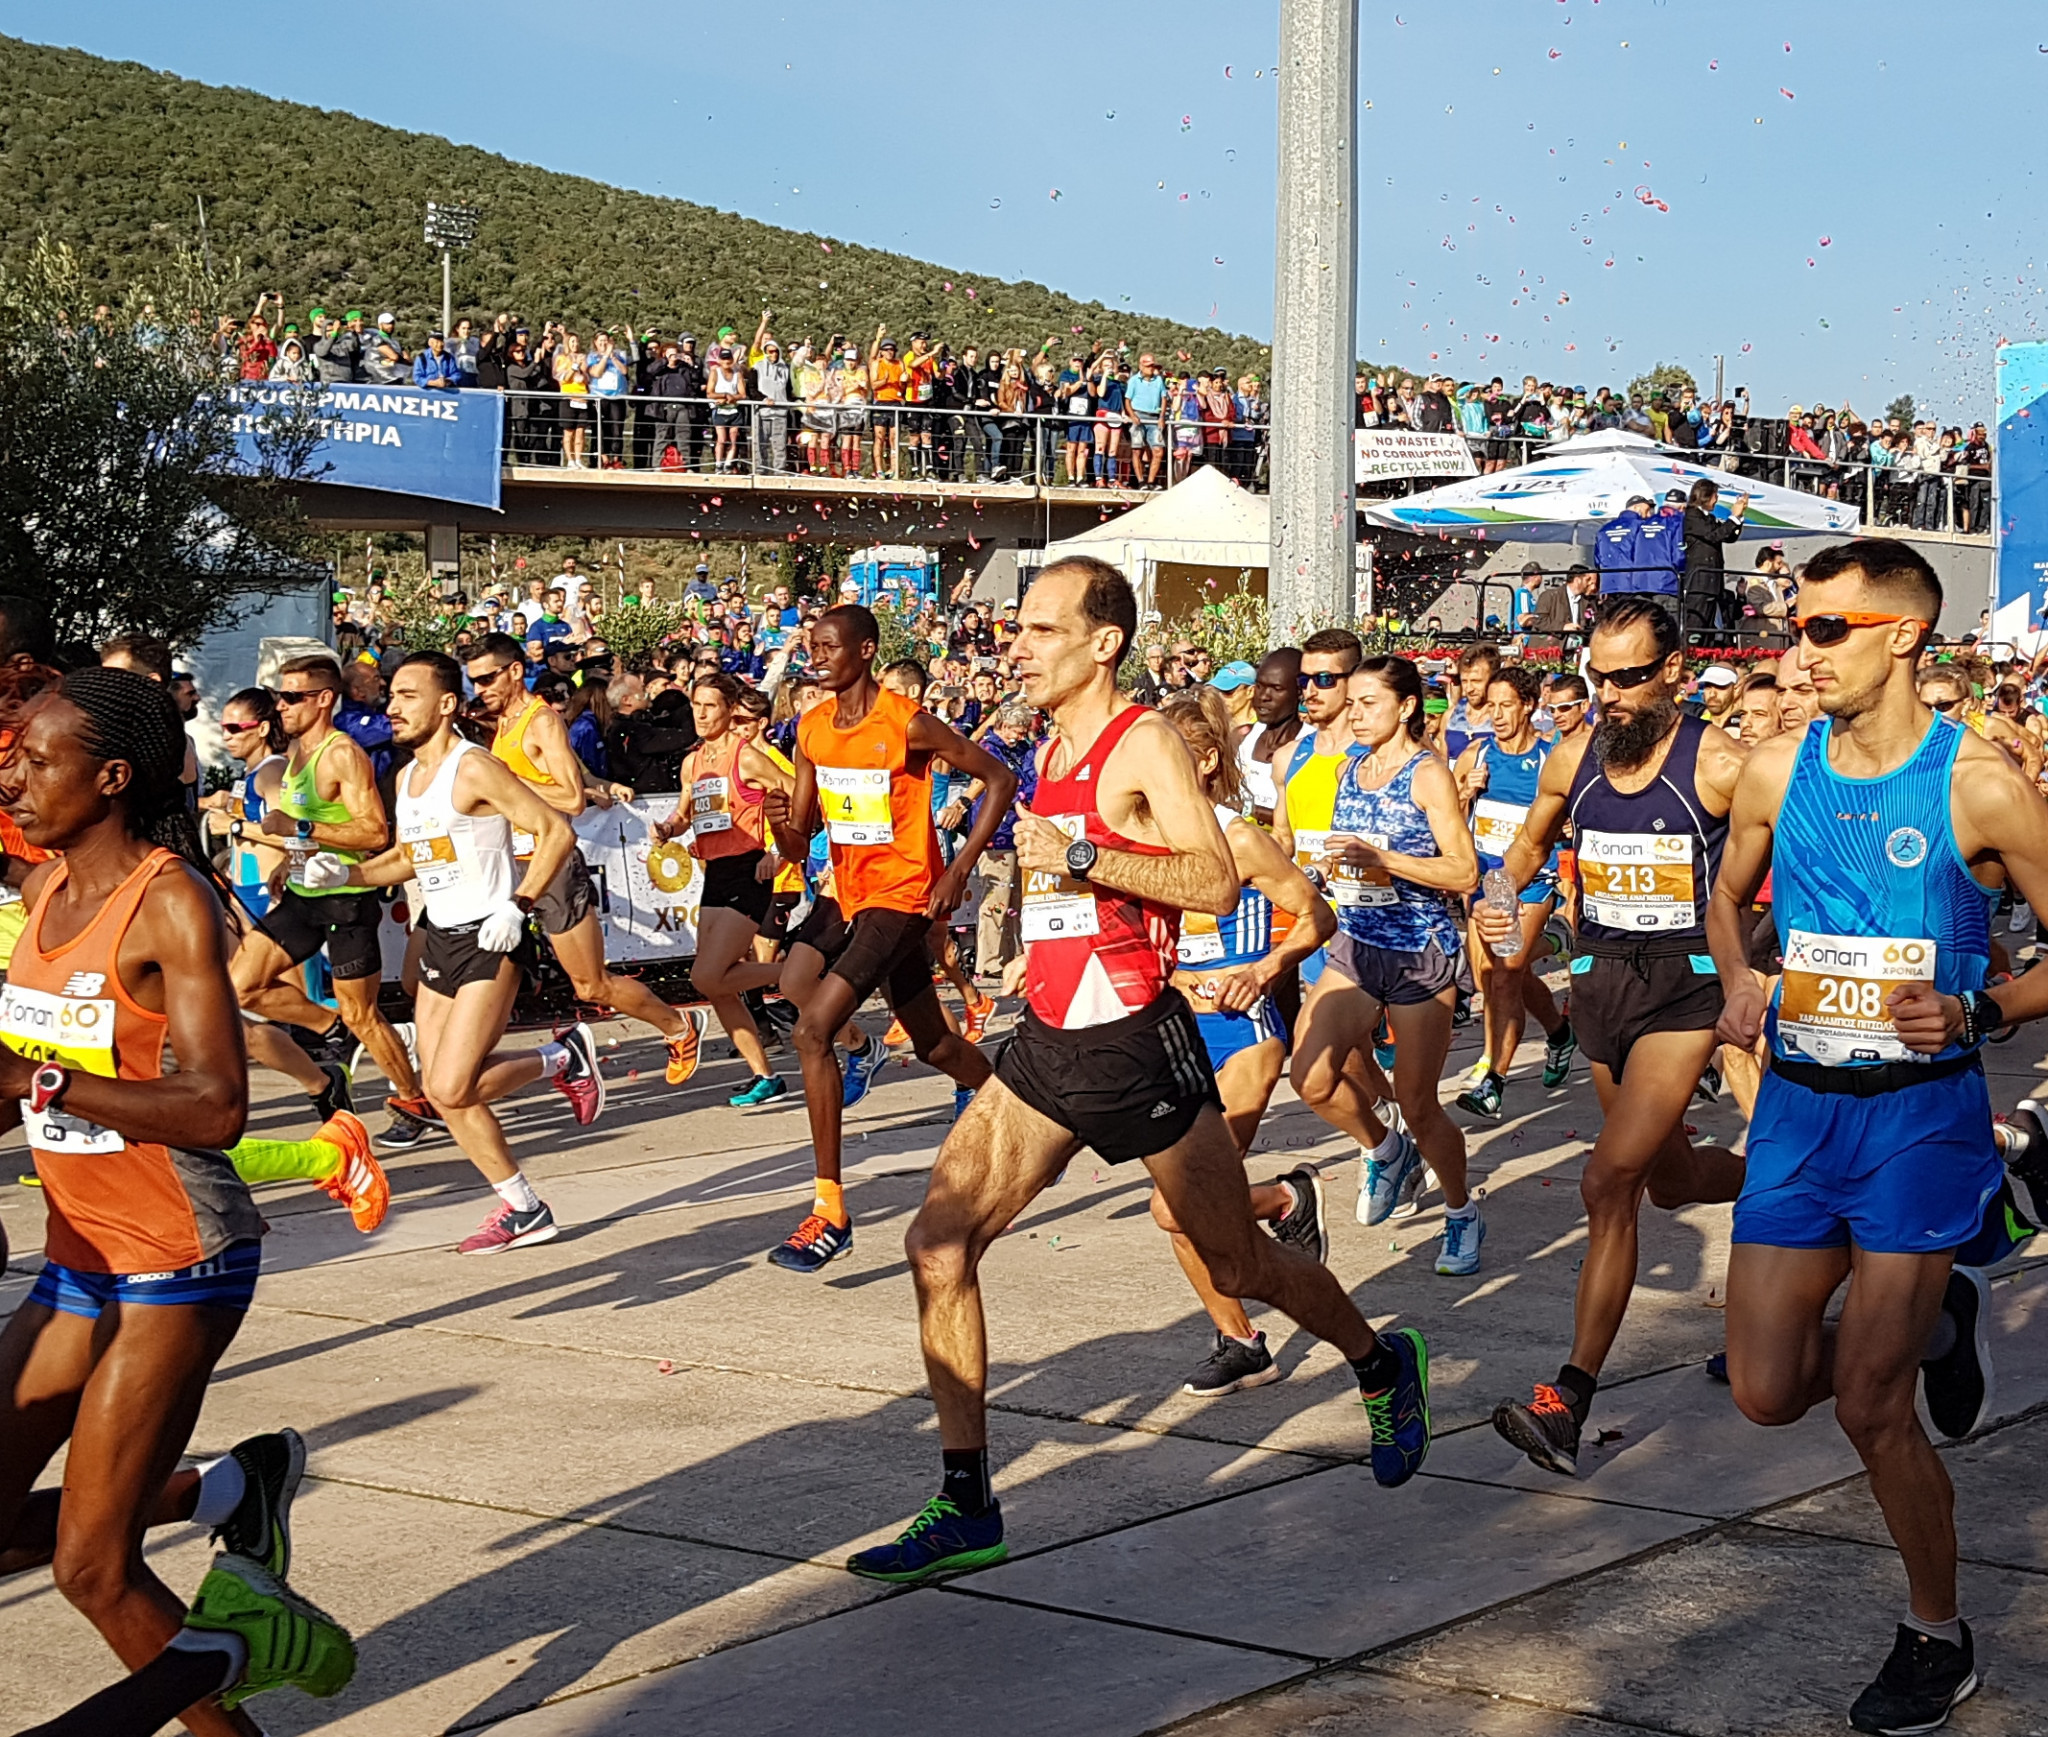 This year's Athens Marathon is set to go ahead in November as scheduled, despite the coronavirus crisis ©David Owen